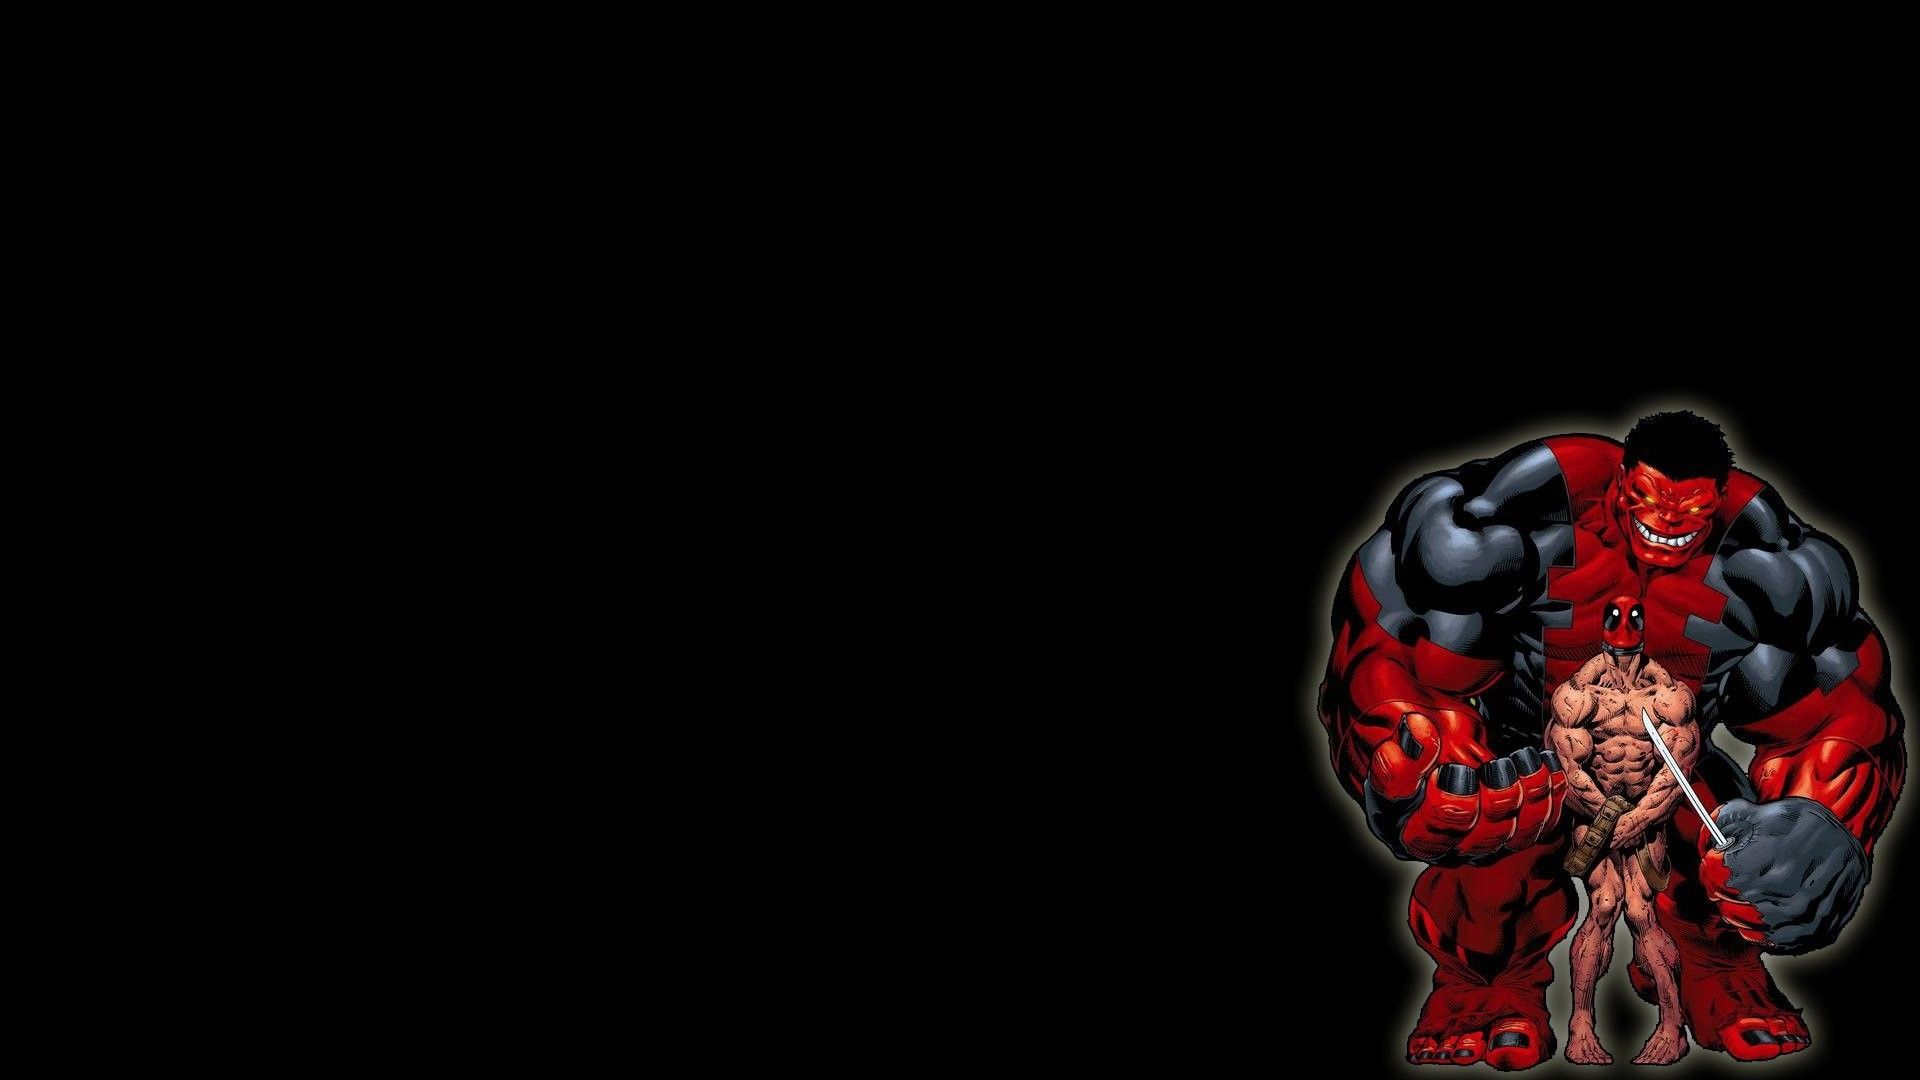 Venom Deadpool Wallpapers Top Free Venom Deadpool Backgrounds